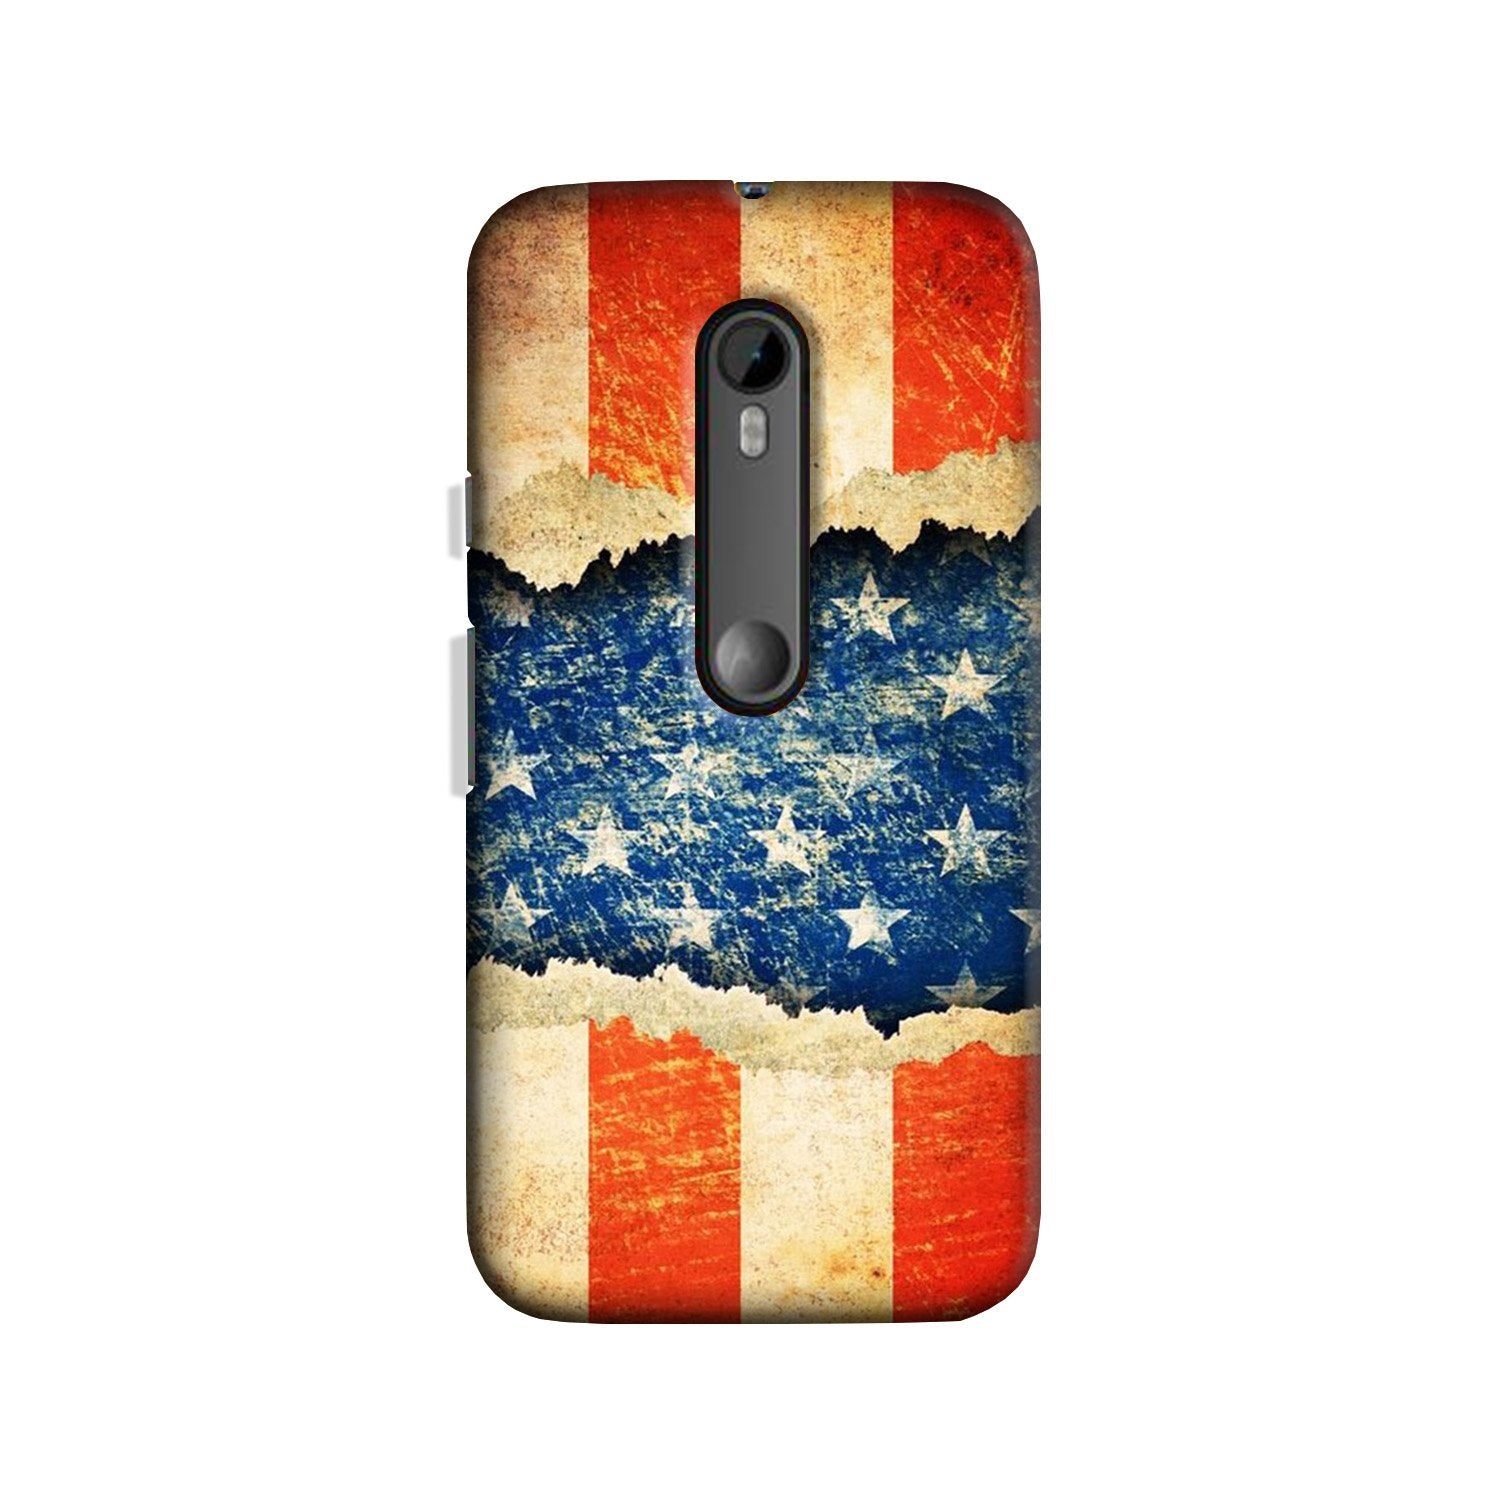 United Kingdom Case for Moto G 3rd Gen